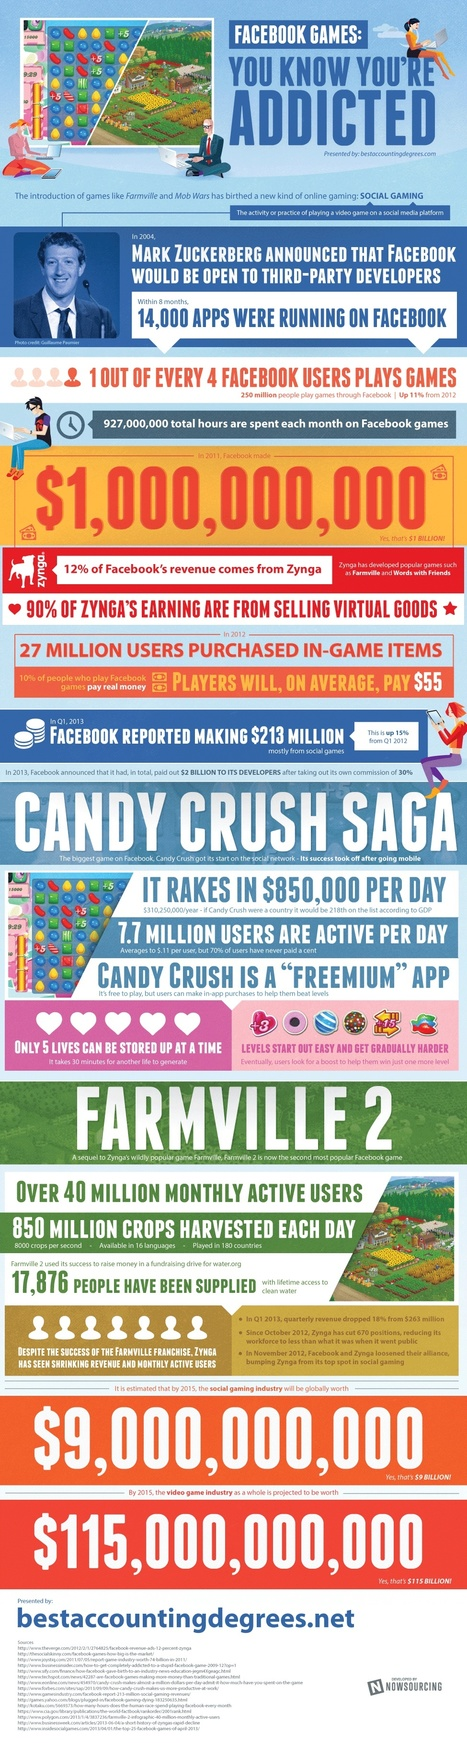 Facebook Games: Are You Addicted? [INFOGRAPHIC] | MarketingHits | Scoop.it